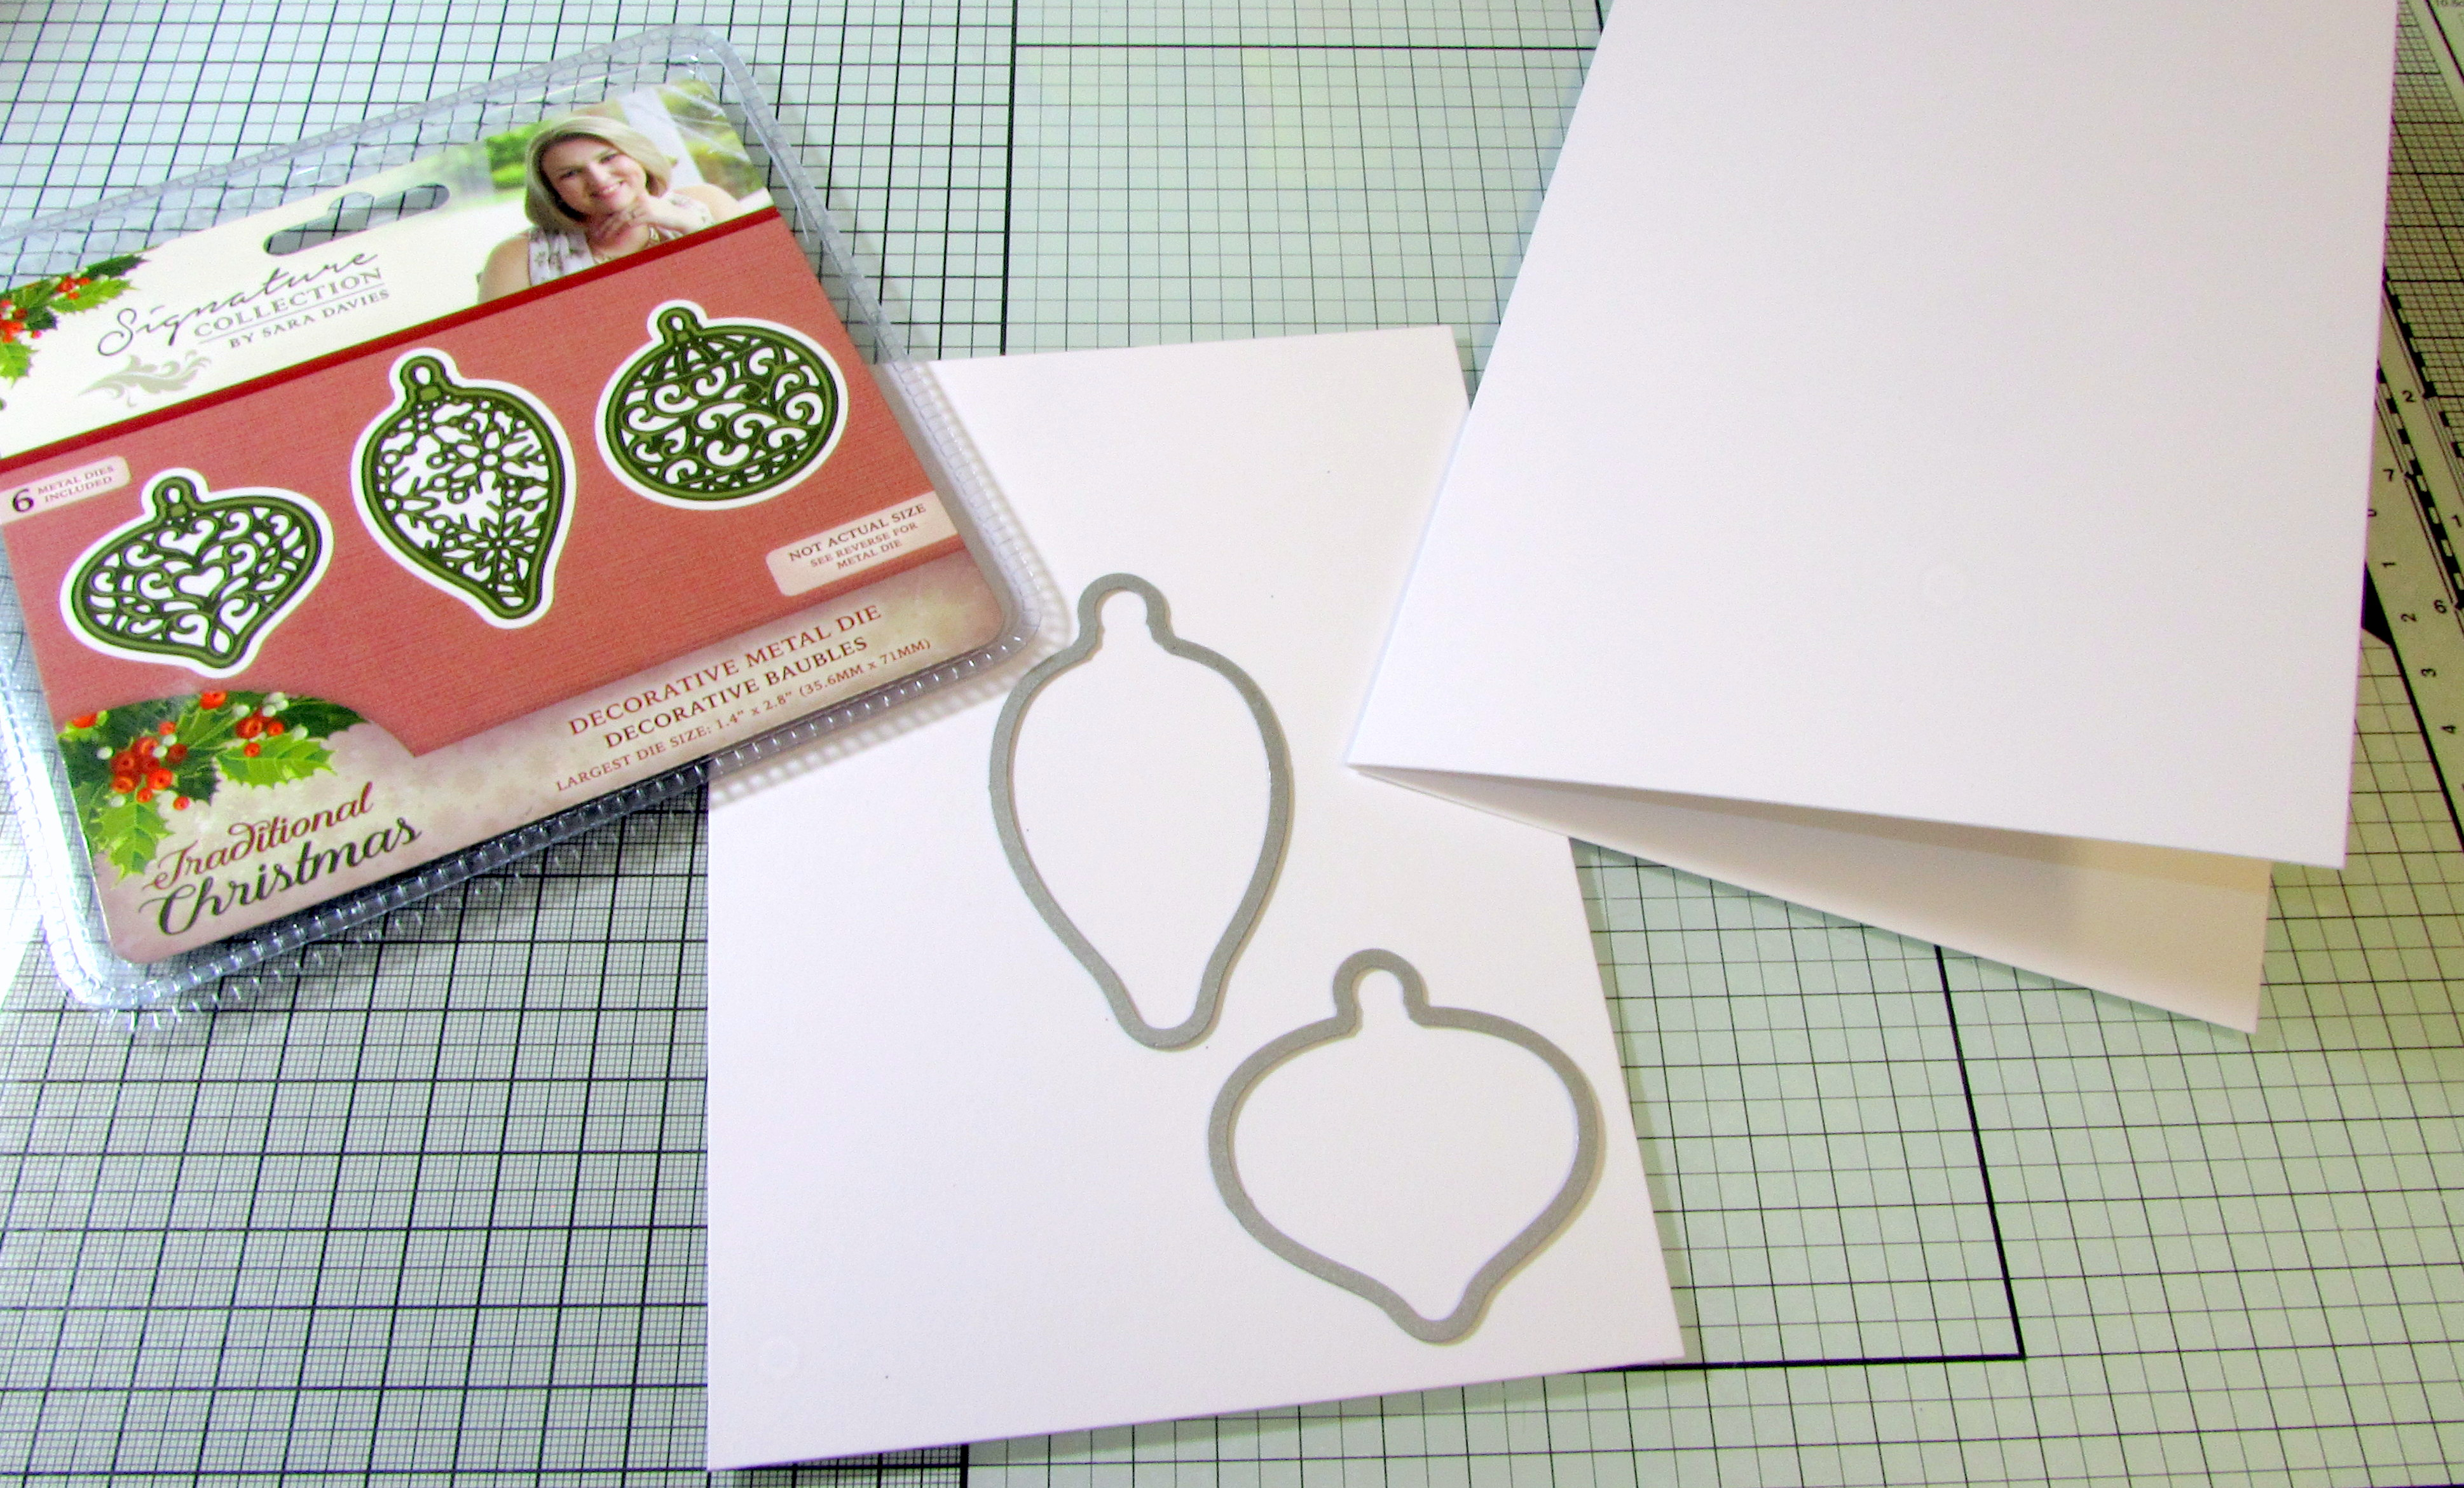 Place dies on folded card ready for cutting